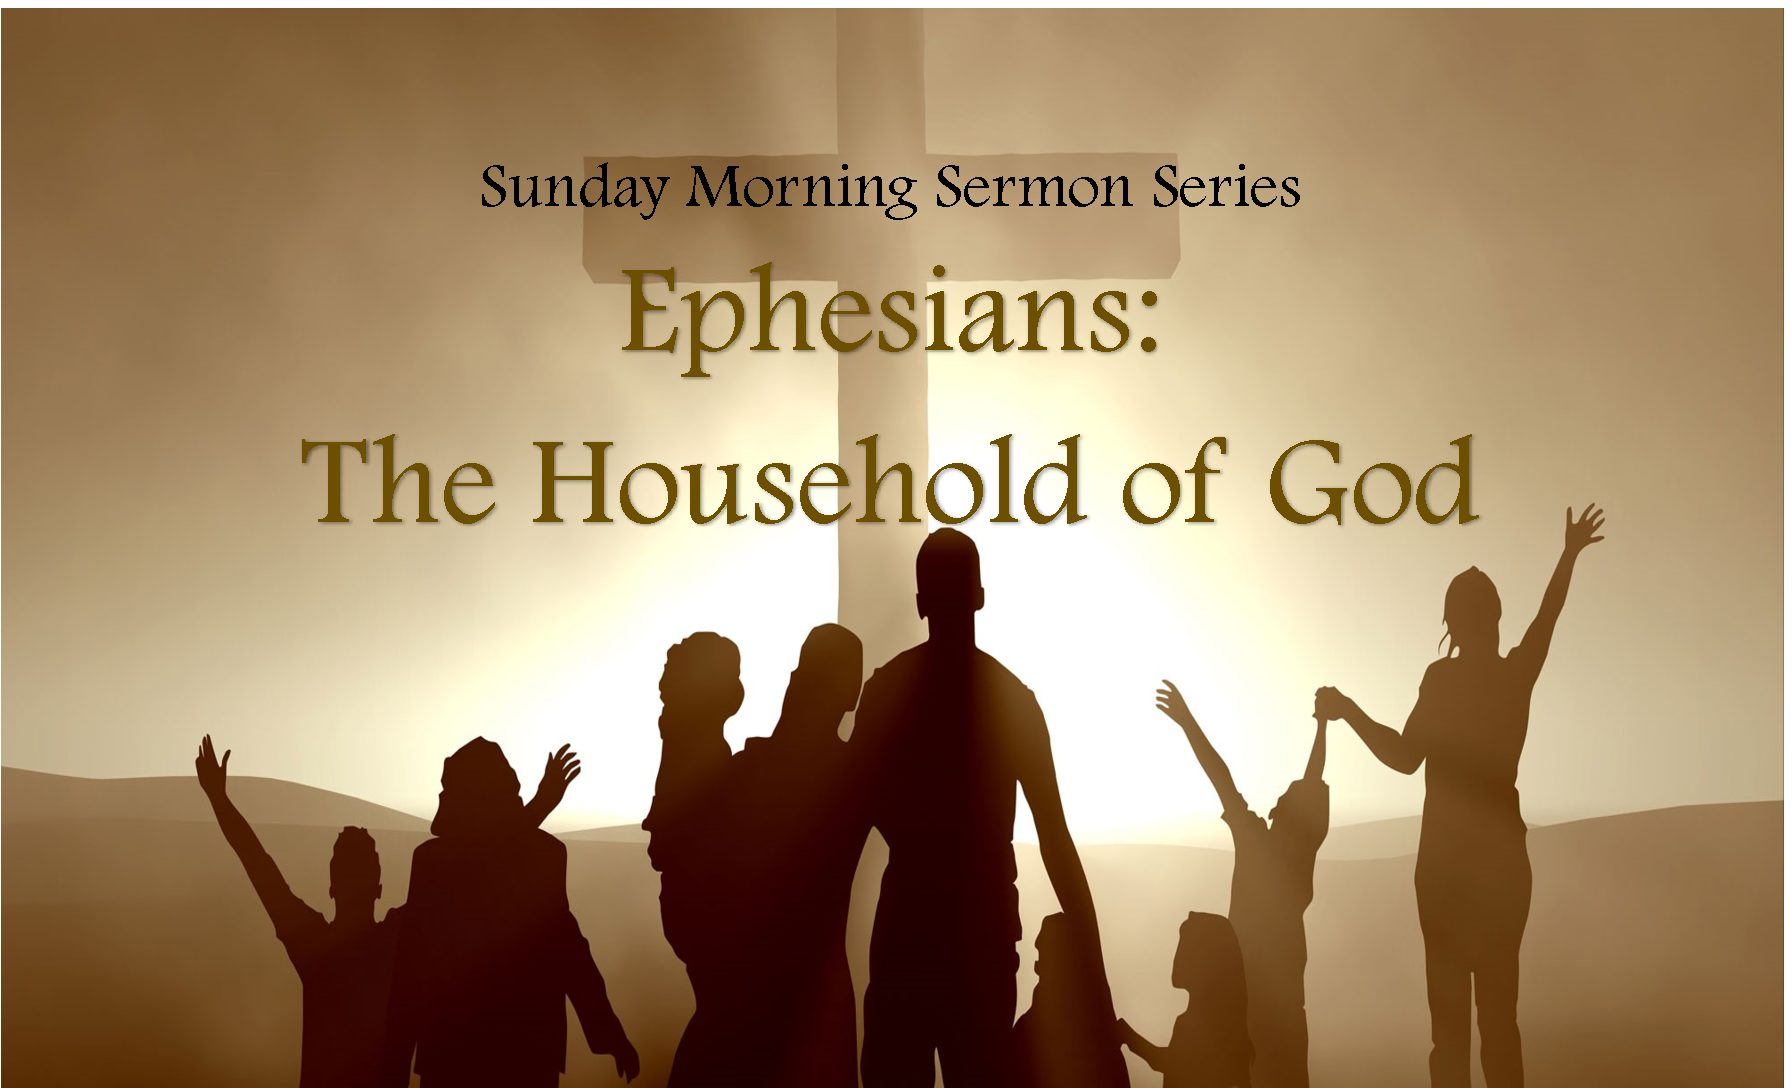 The Household of God: The Father's Glorious Grace